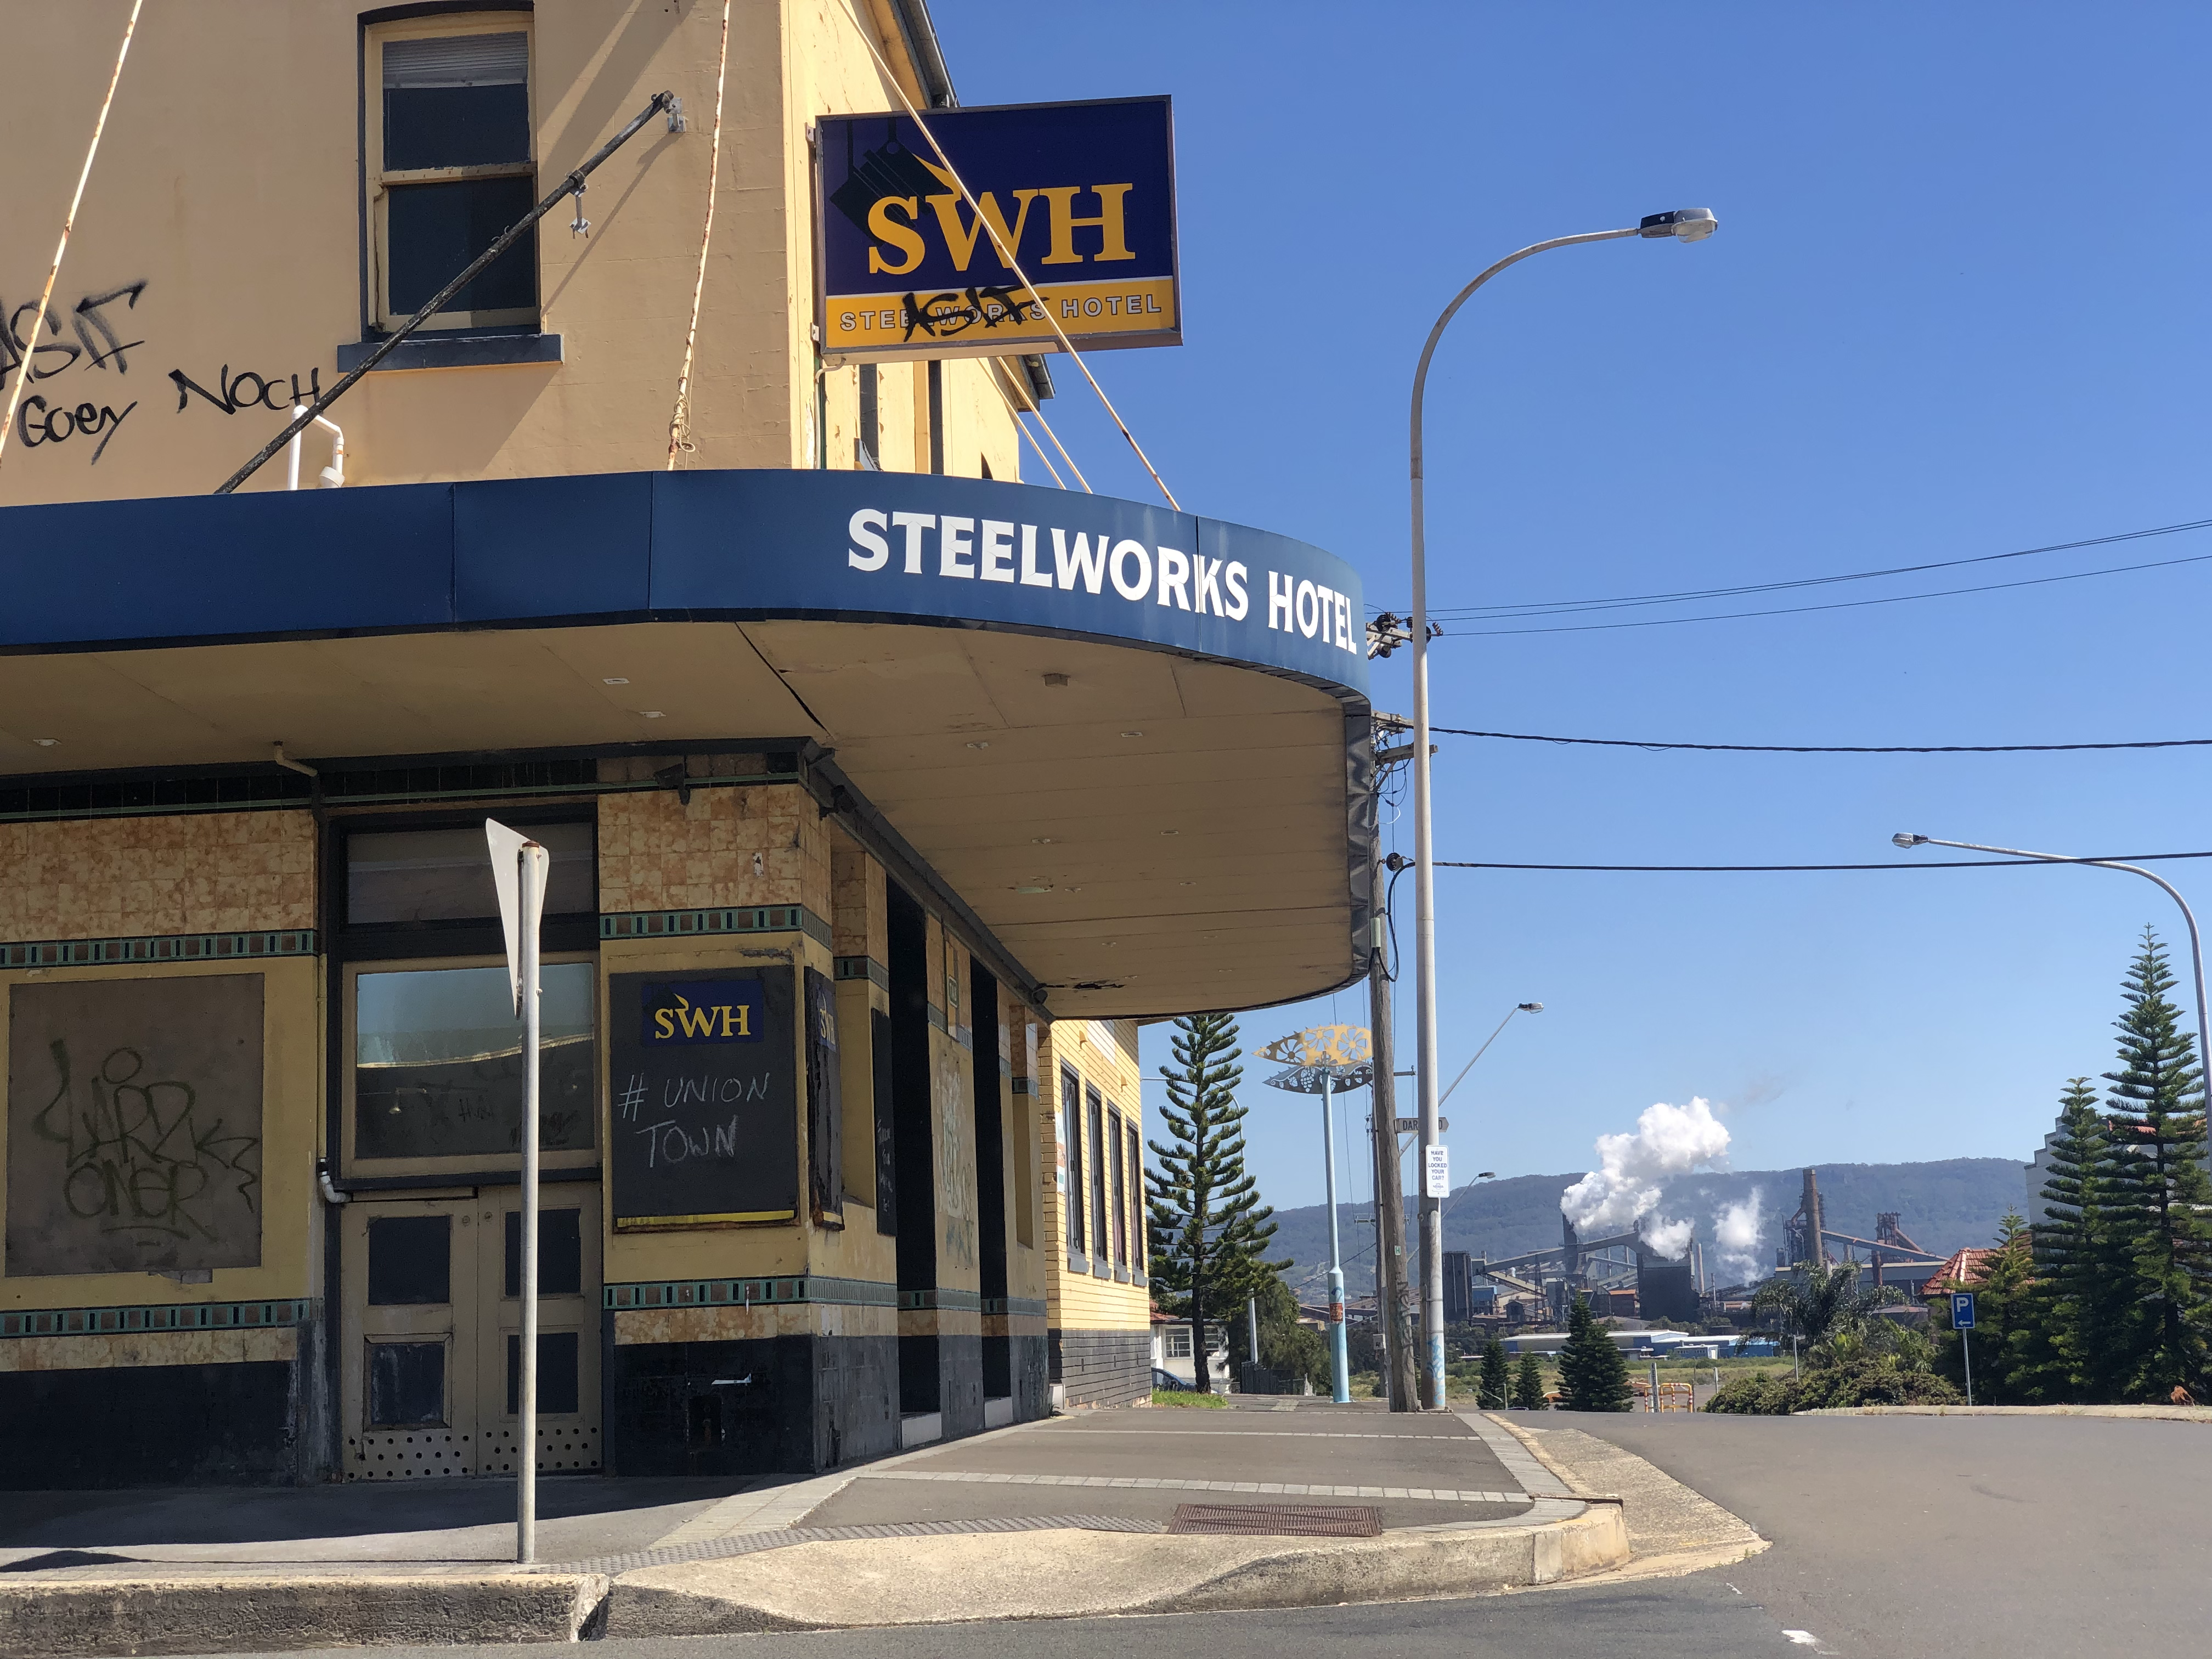 Steelworks Hotel, Wollongong